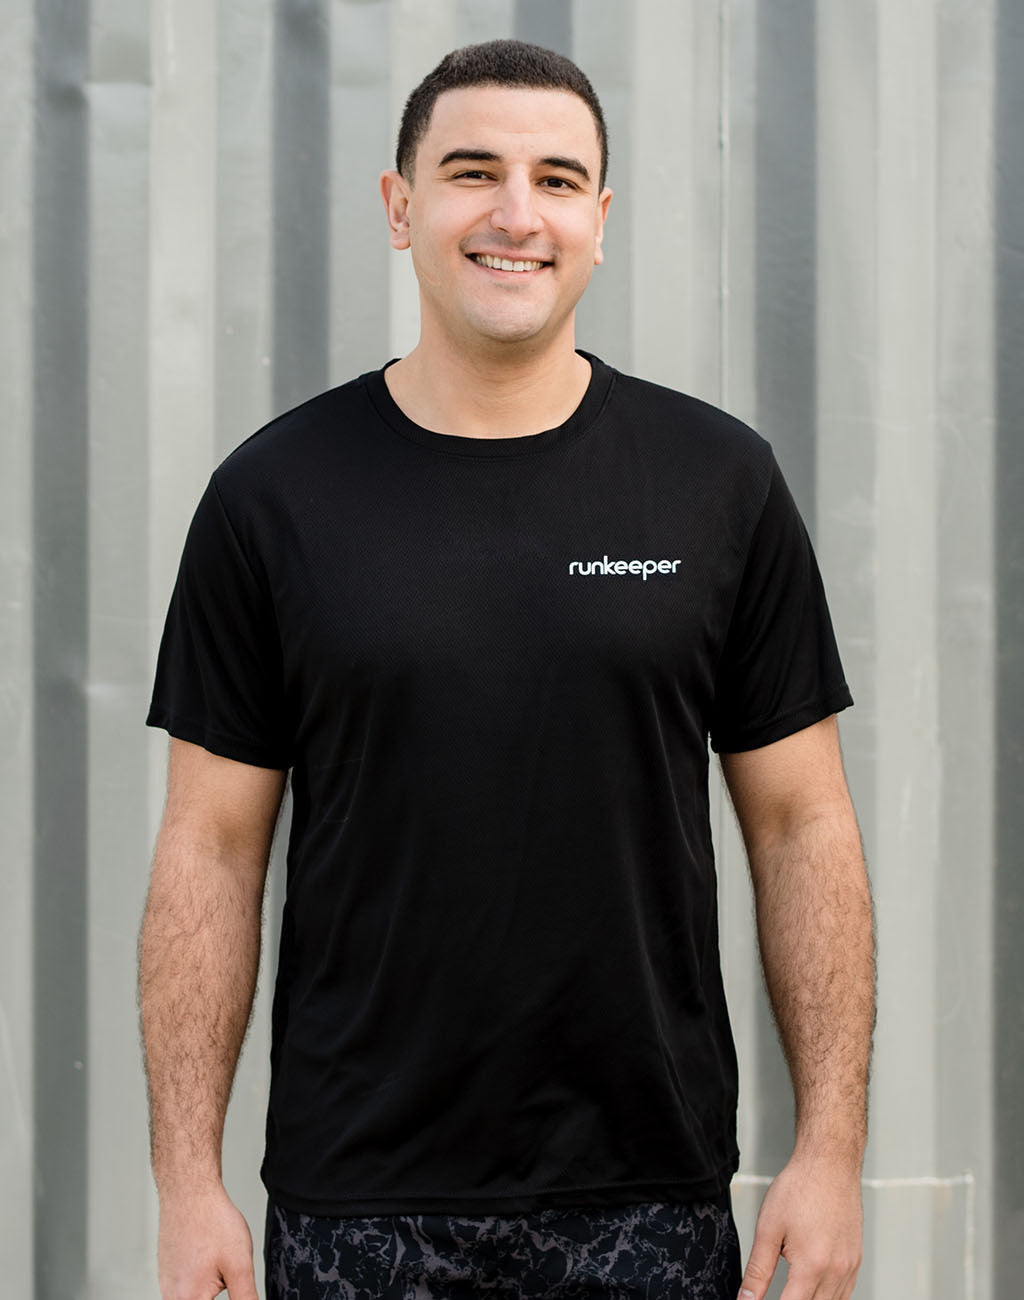 Men's - Runkeeper Tech Tee